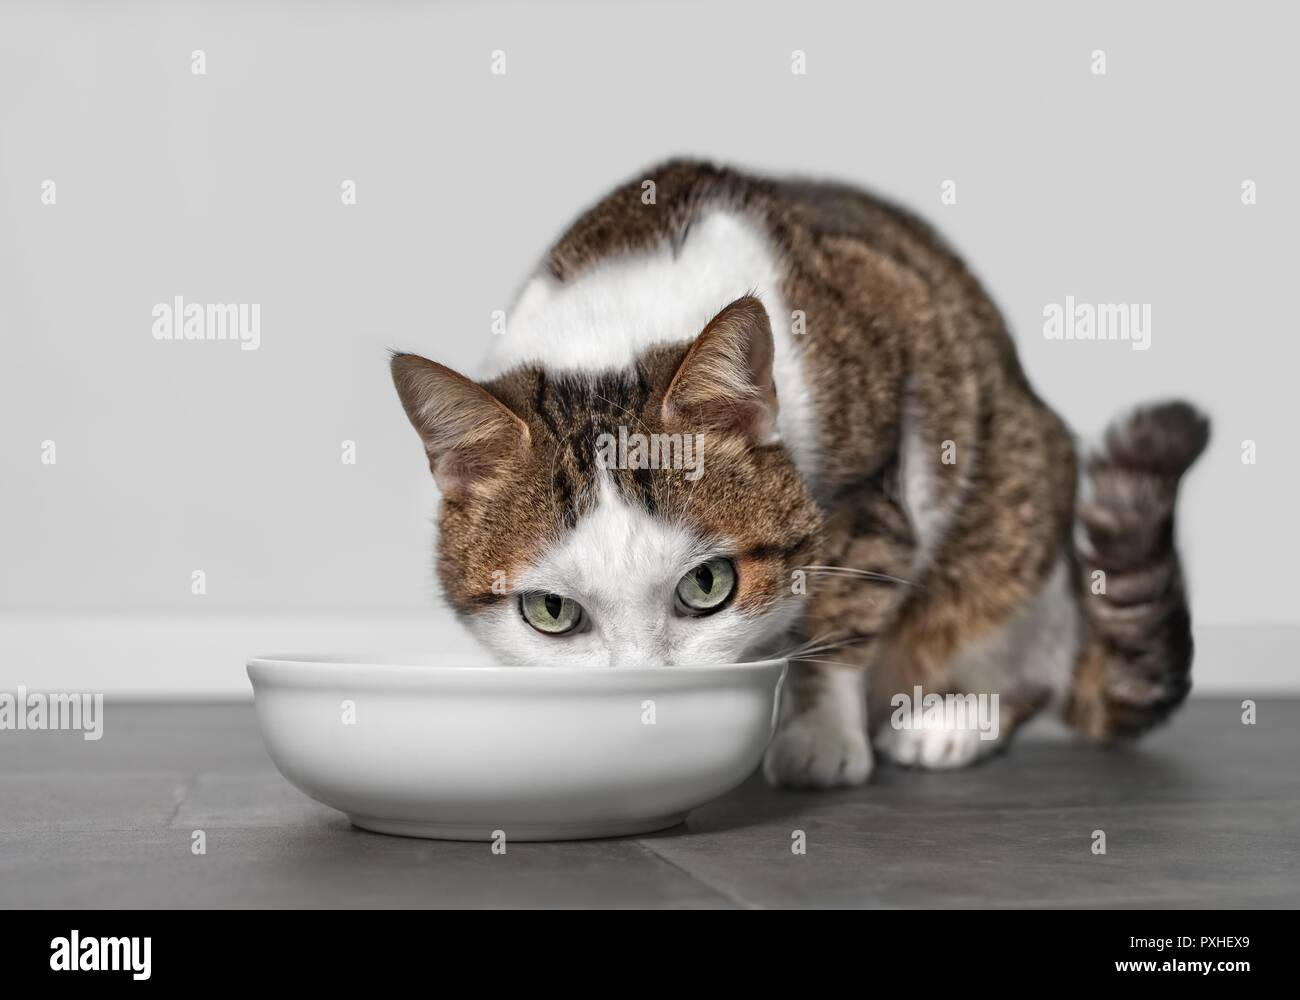 Tabby cat eating out of food bowl - Stock Image